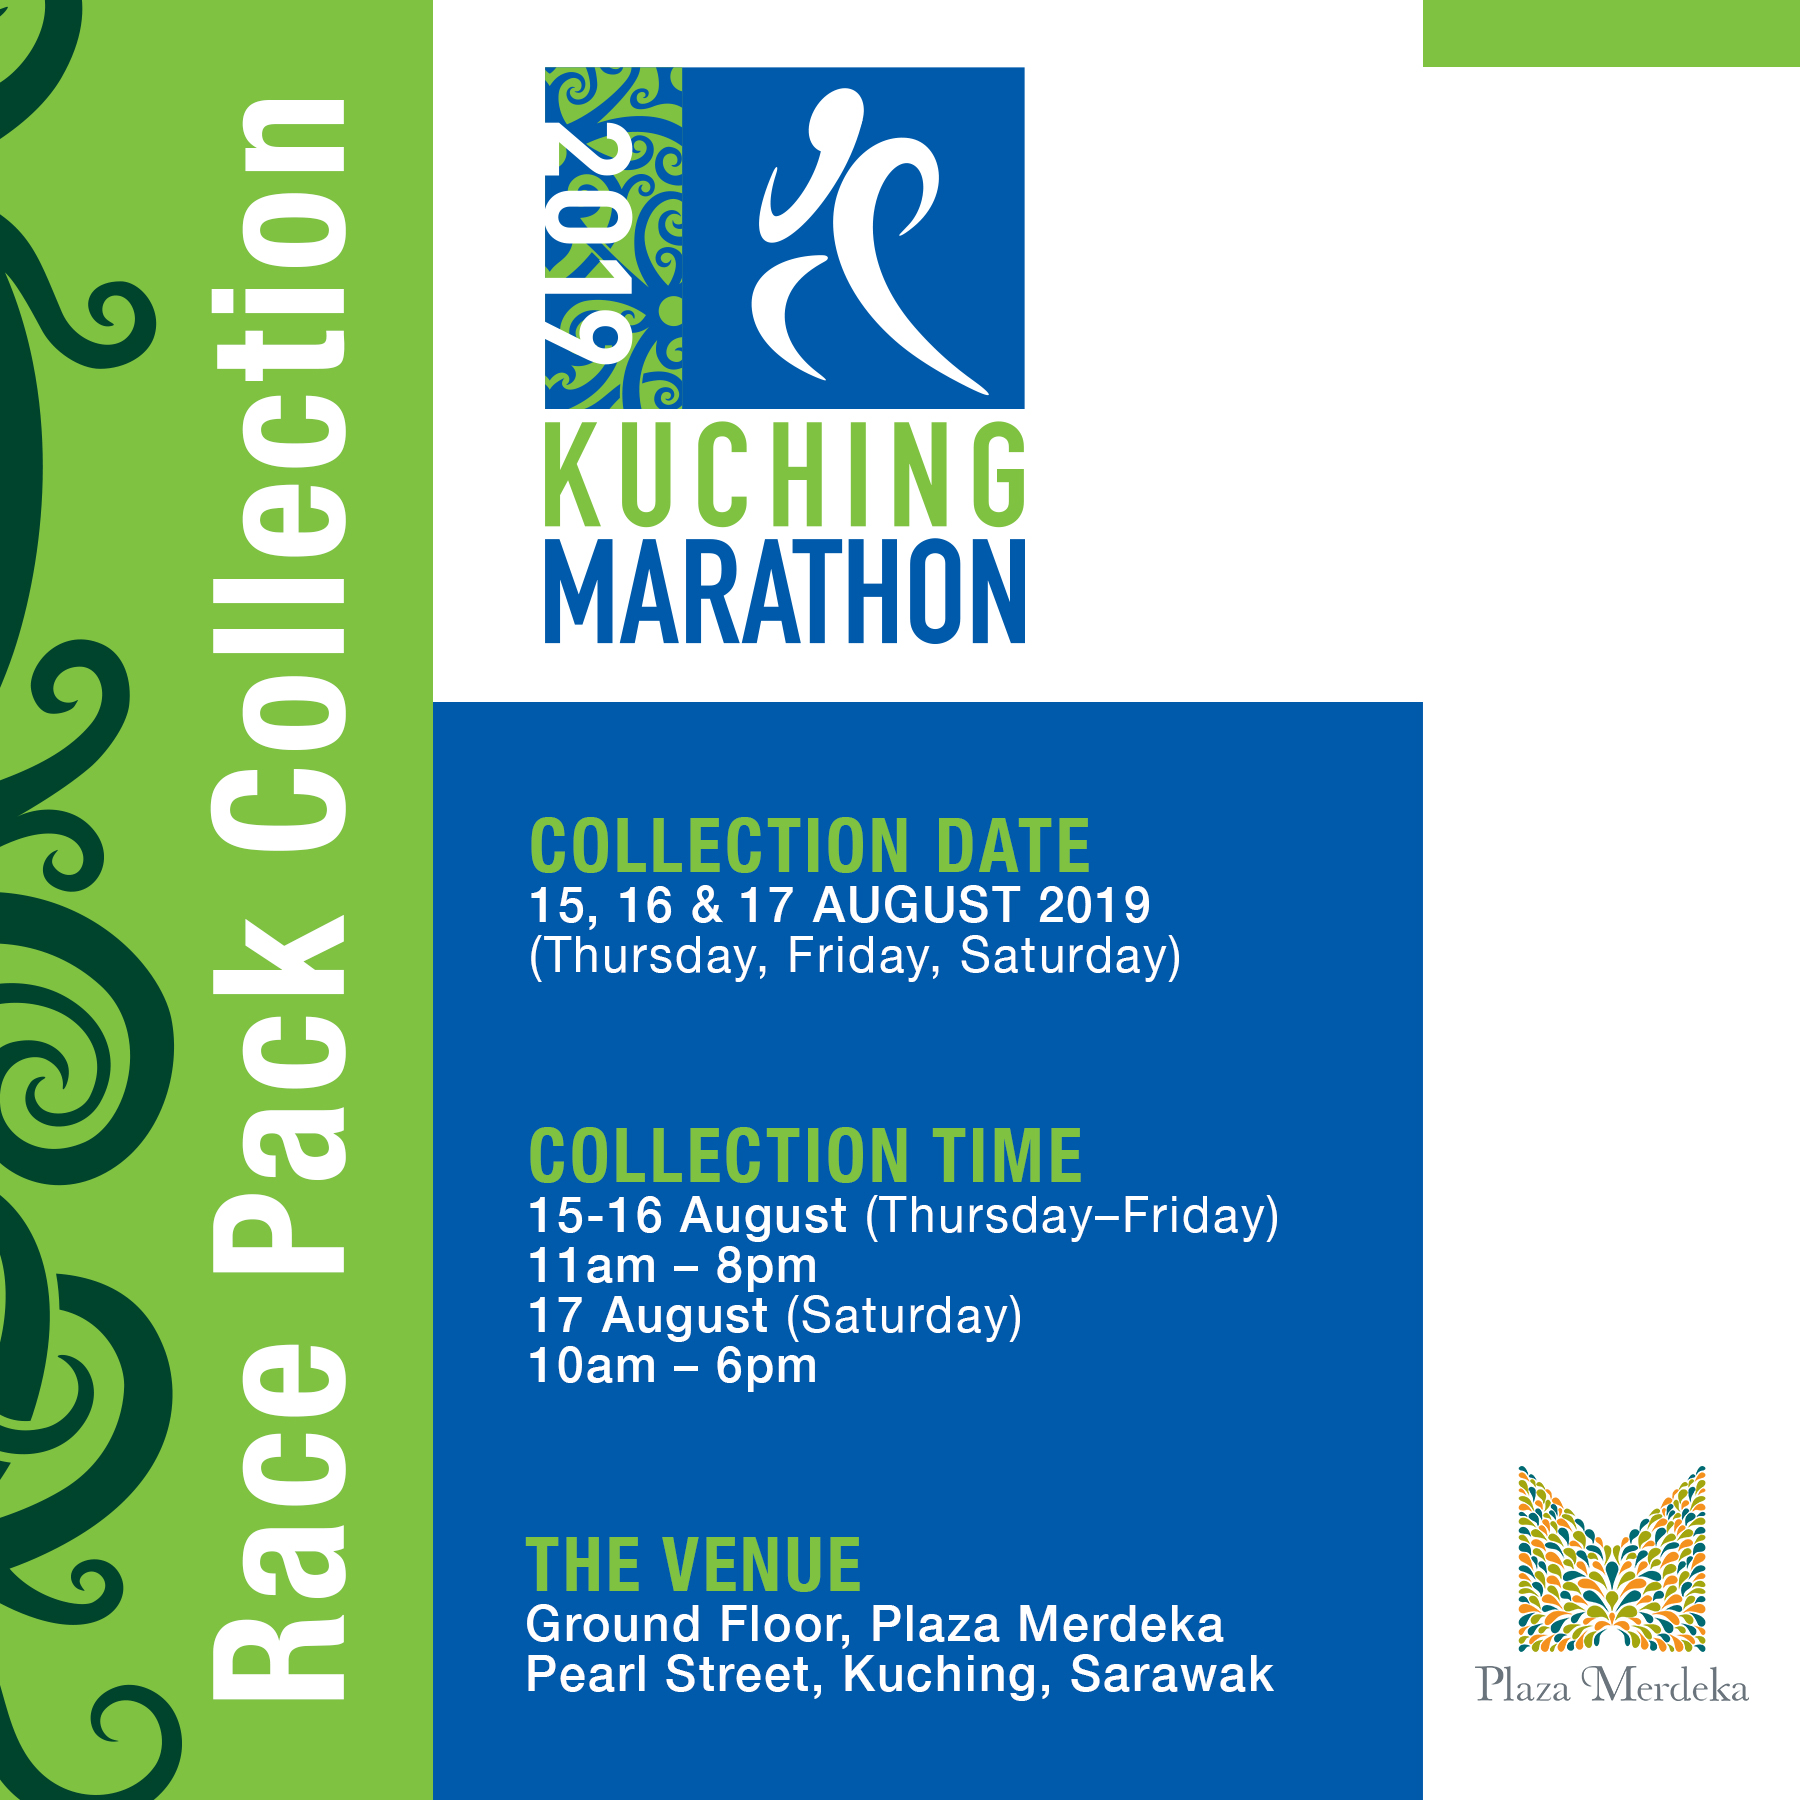 Plaza Merdeka | Kuching Marathon 2019 Race Pack Collection